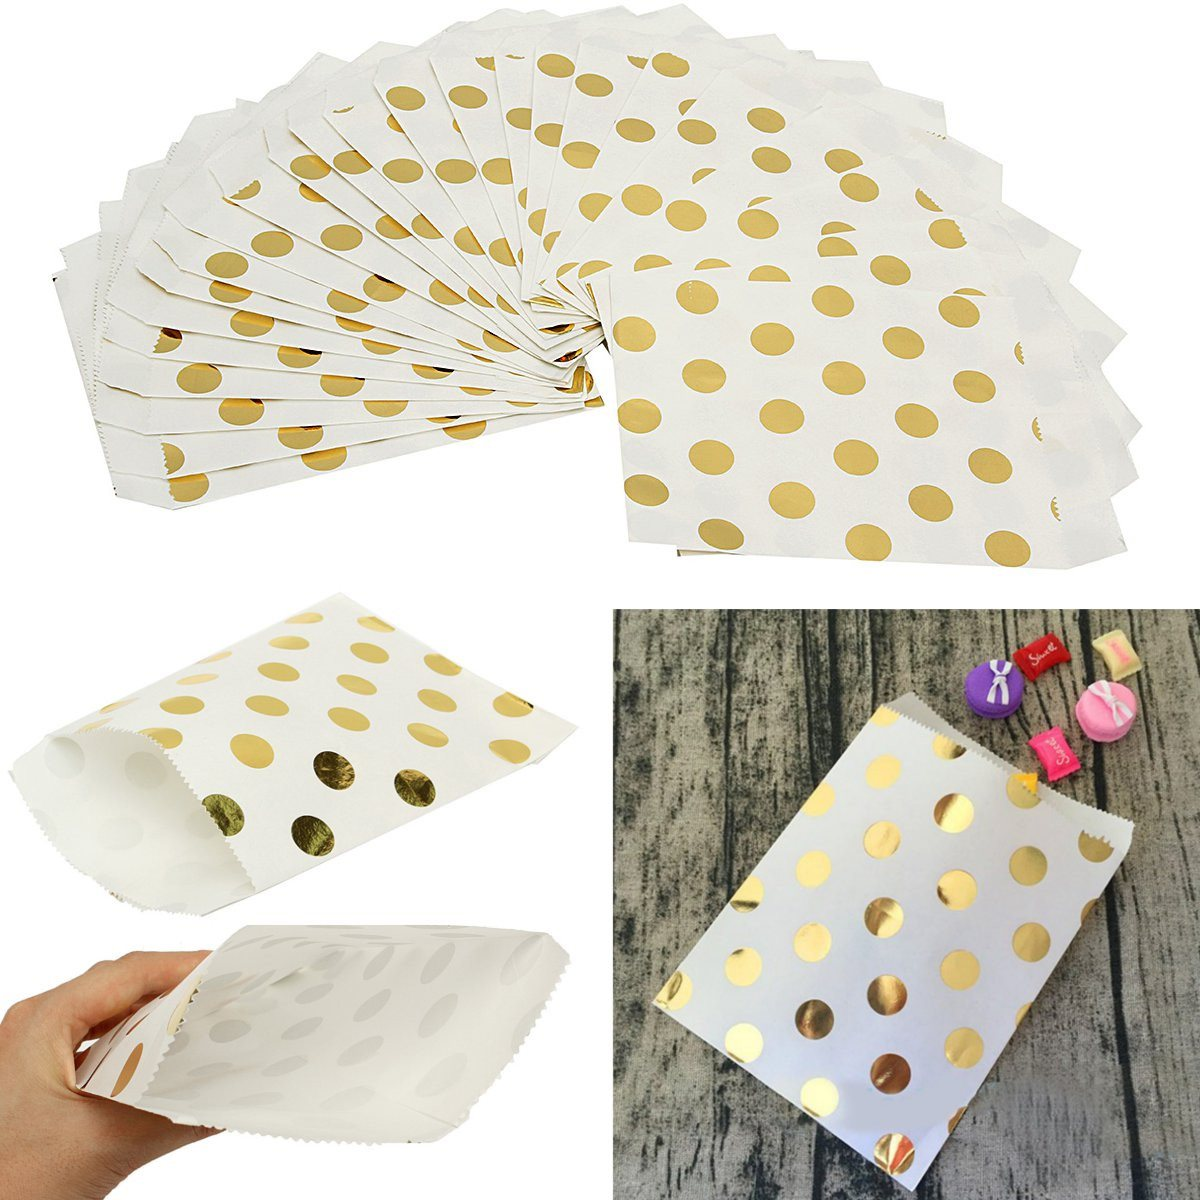 25pcs/lot Wedding Foil Paper Bag Candy Paper Bags Gold Favors Birthday Gifts Decoration Children's Day Party Supplies(China (Mainland))